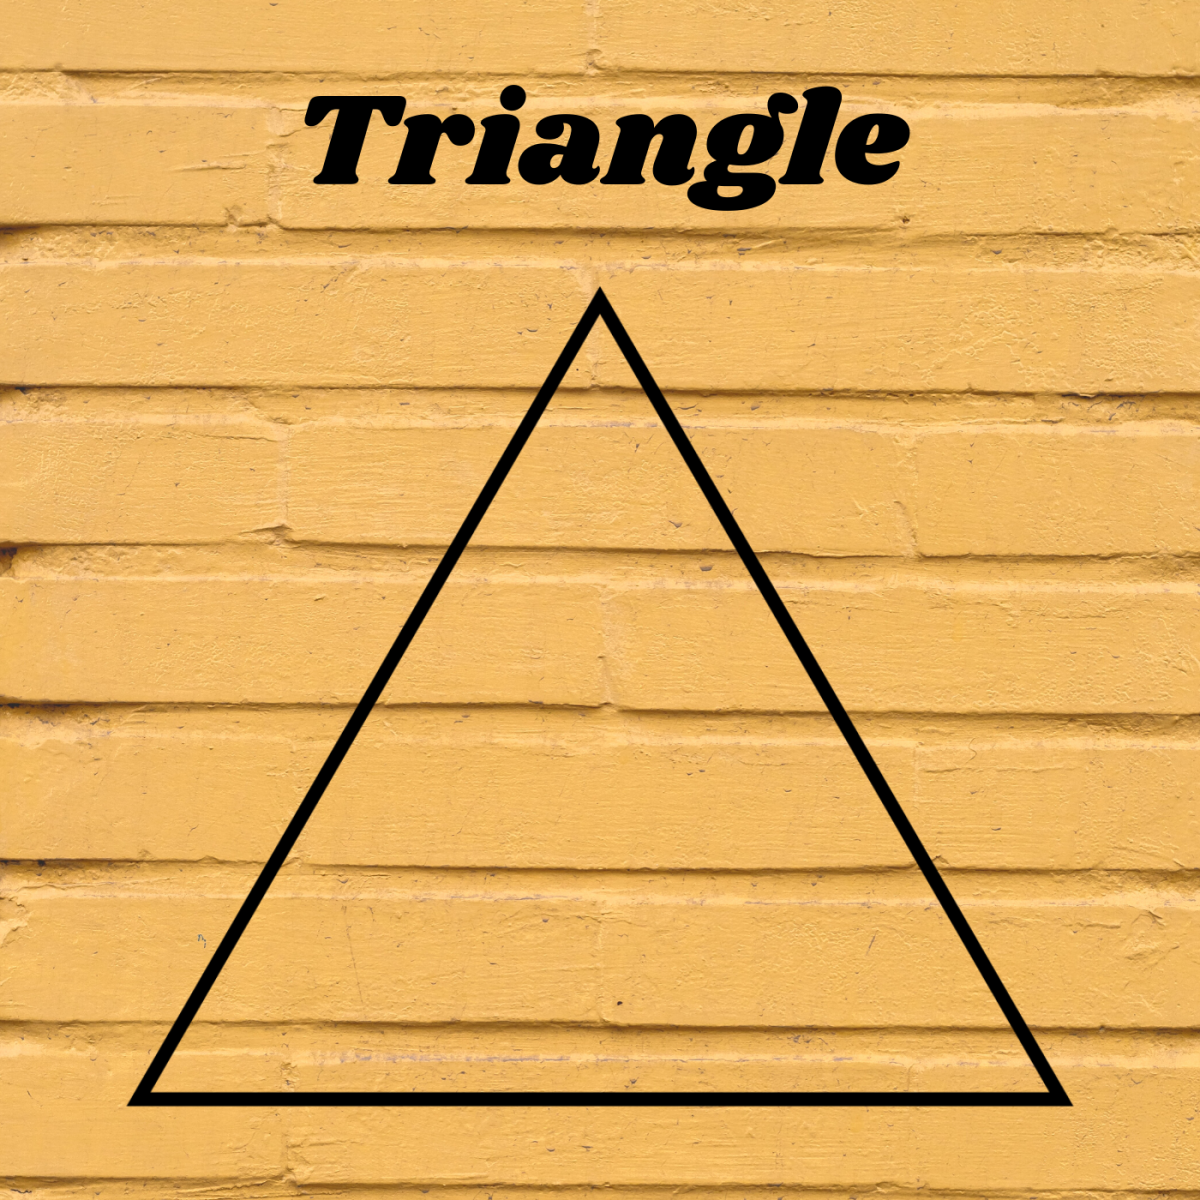 Triangles have three sides.